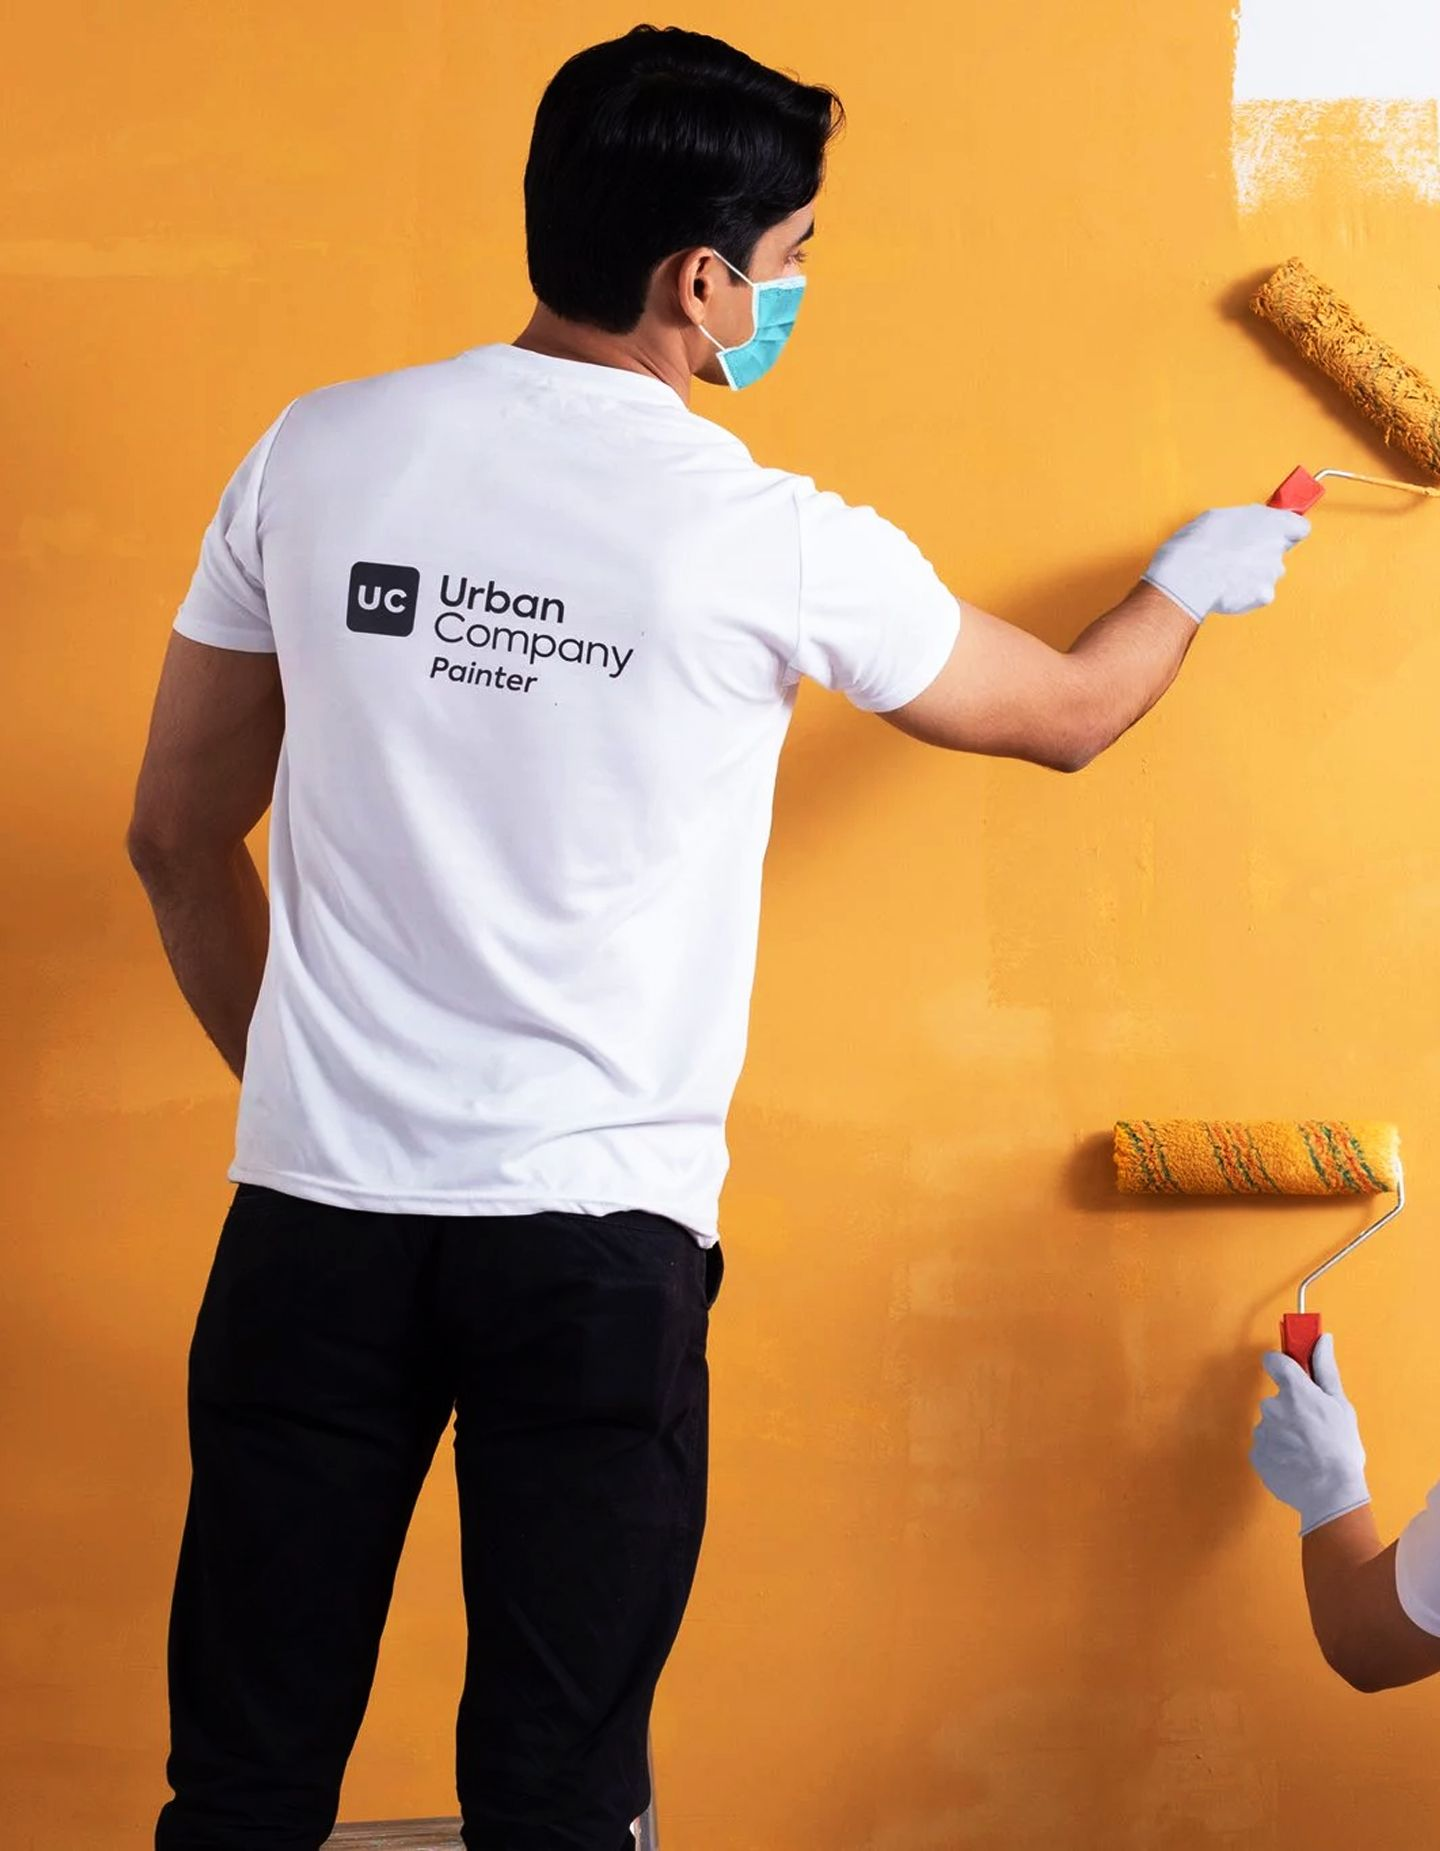 A two painters paint a wall orange for a job with Urban Company